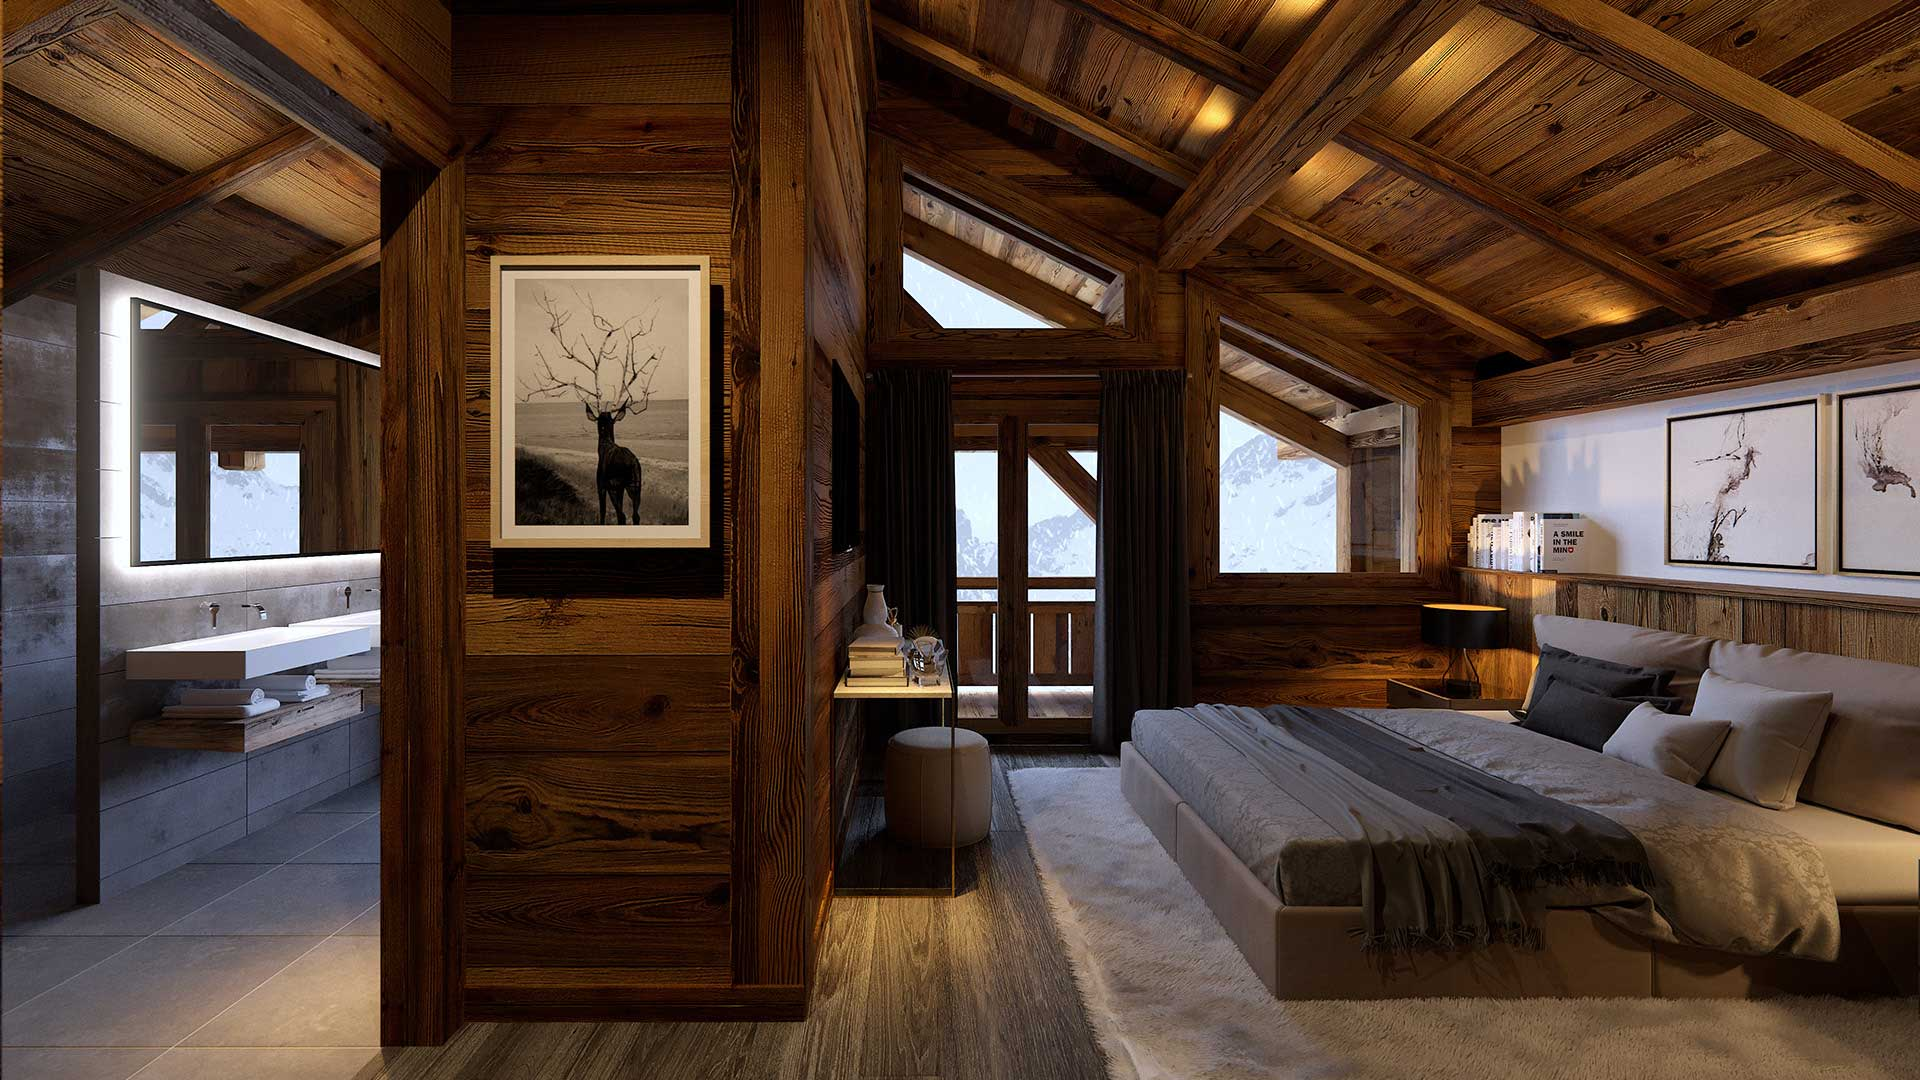 Rendering of a 3D perspective of a room of a luxurious chalet in the mountains.